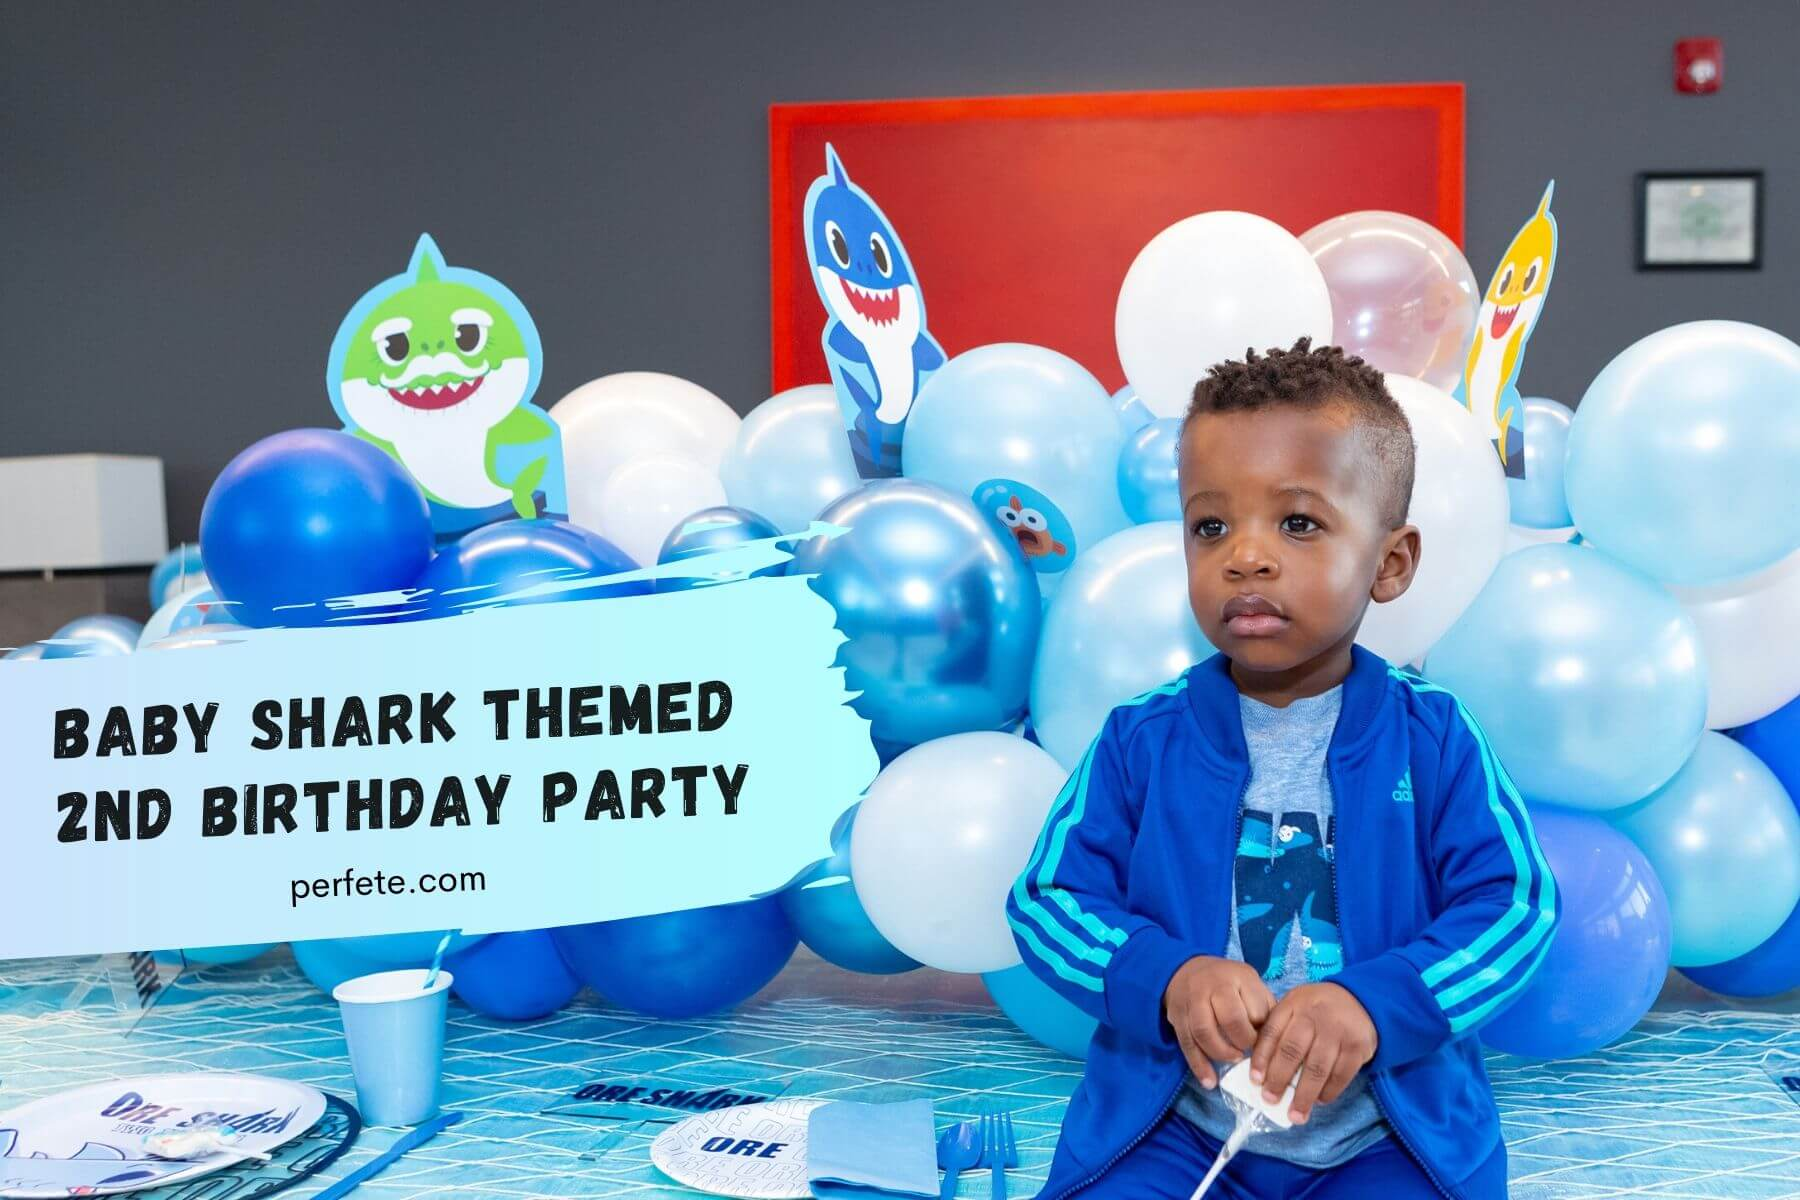 Baby Shark themed 2nd birthday party